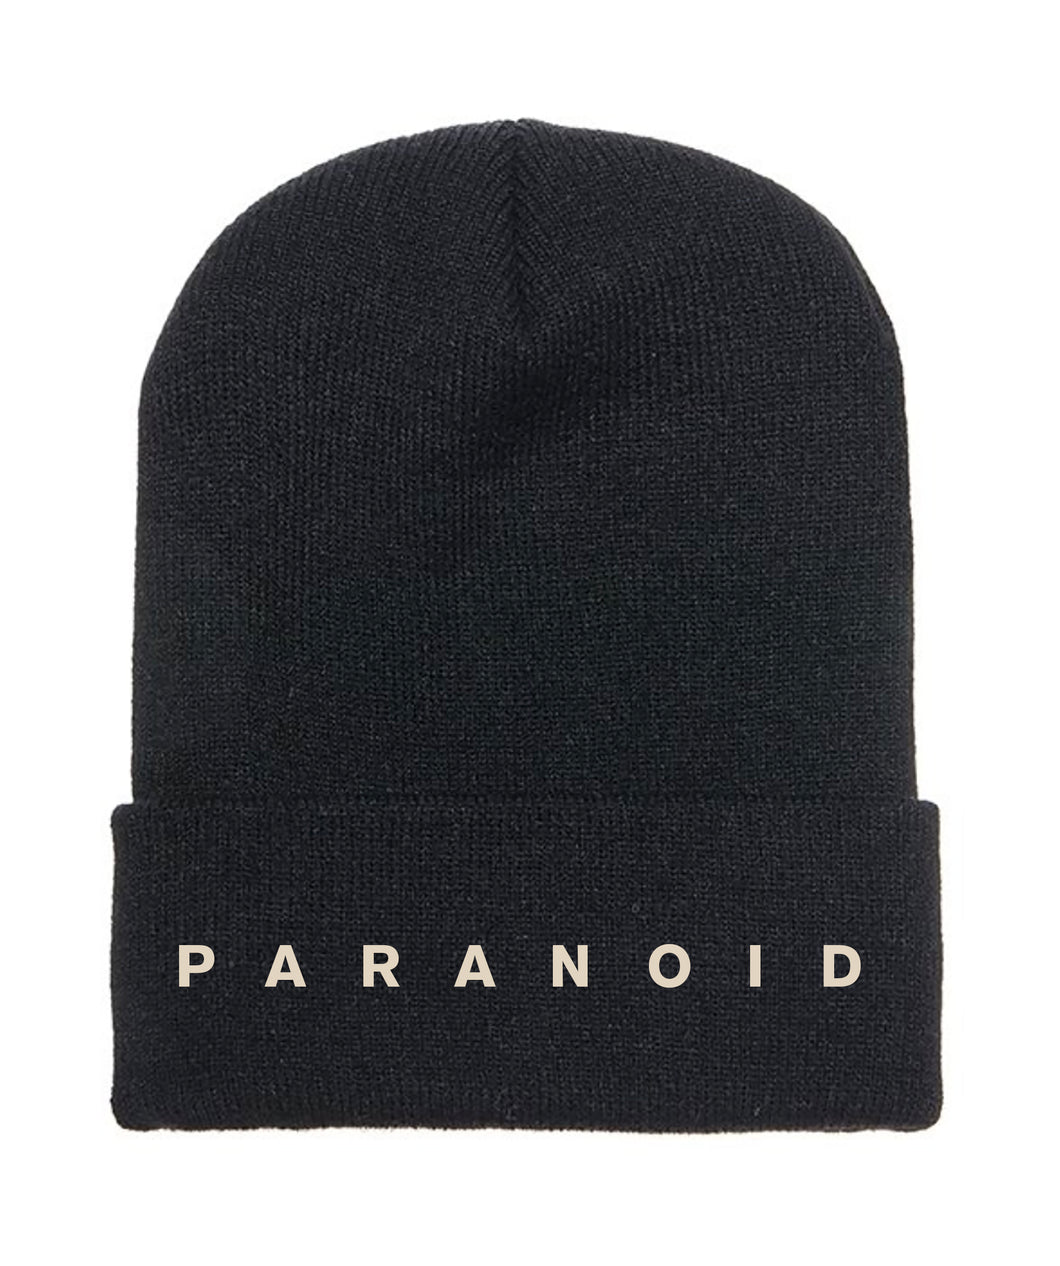 PARANOID - Embroidered Black Beanie